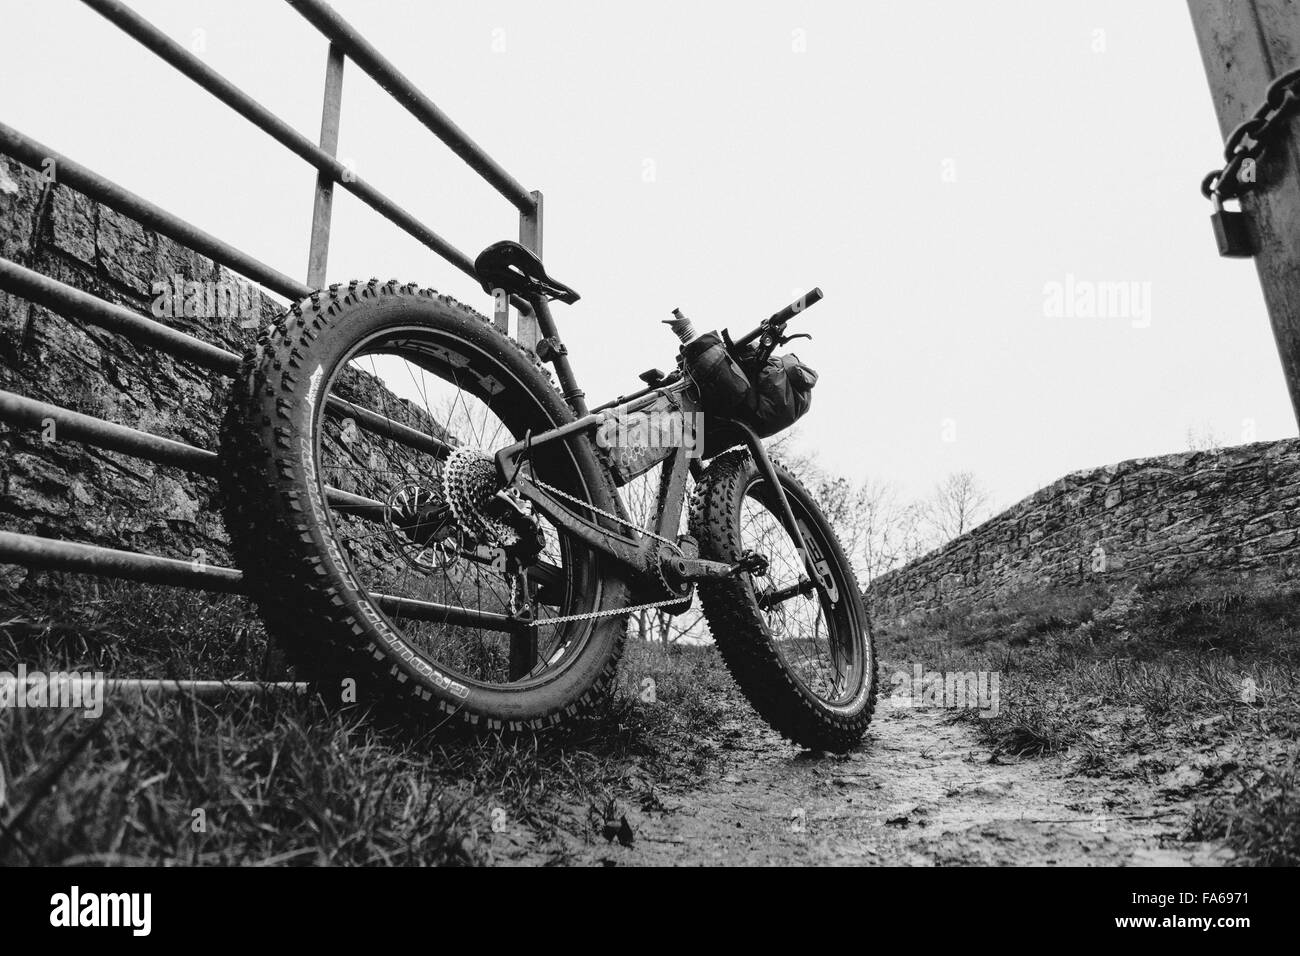 A Fat Bike parked in the countryside - Stock Image